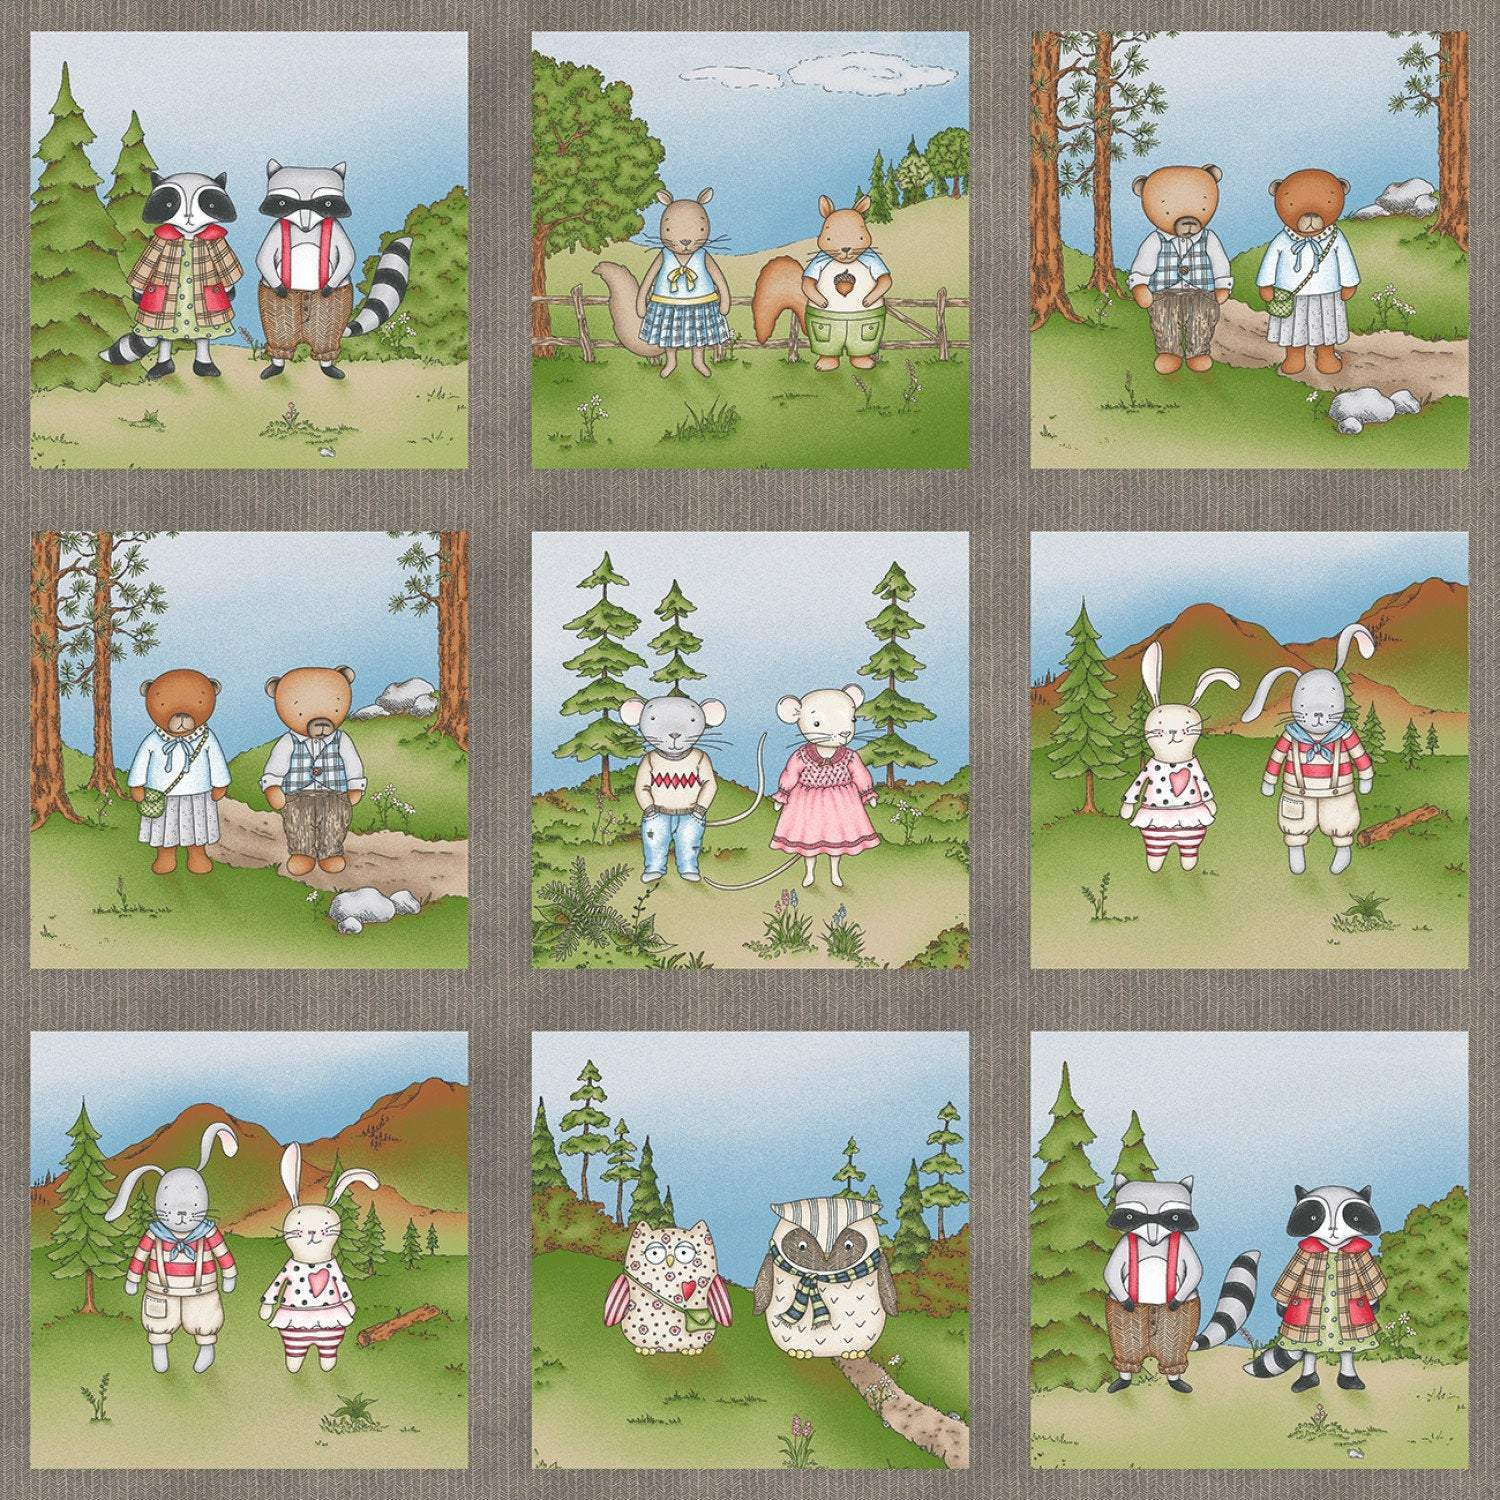 FABRIC PANEL Forest Friends Childrens Cotton Fabric Panel 24x42 inches